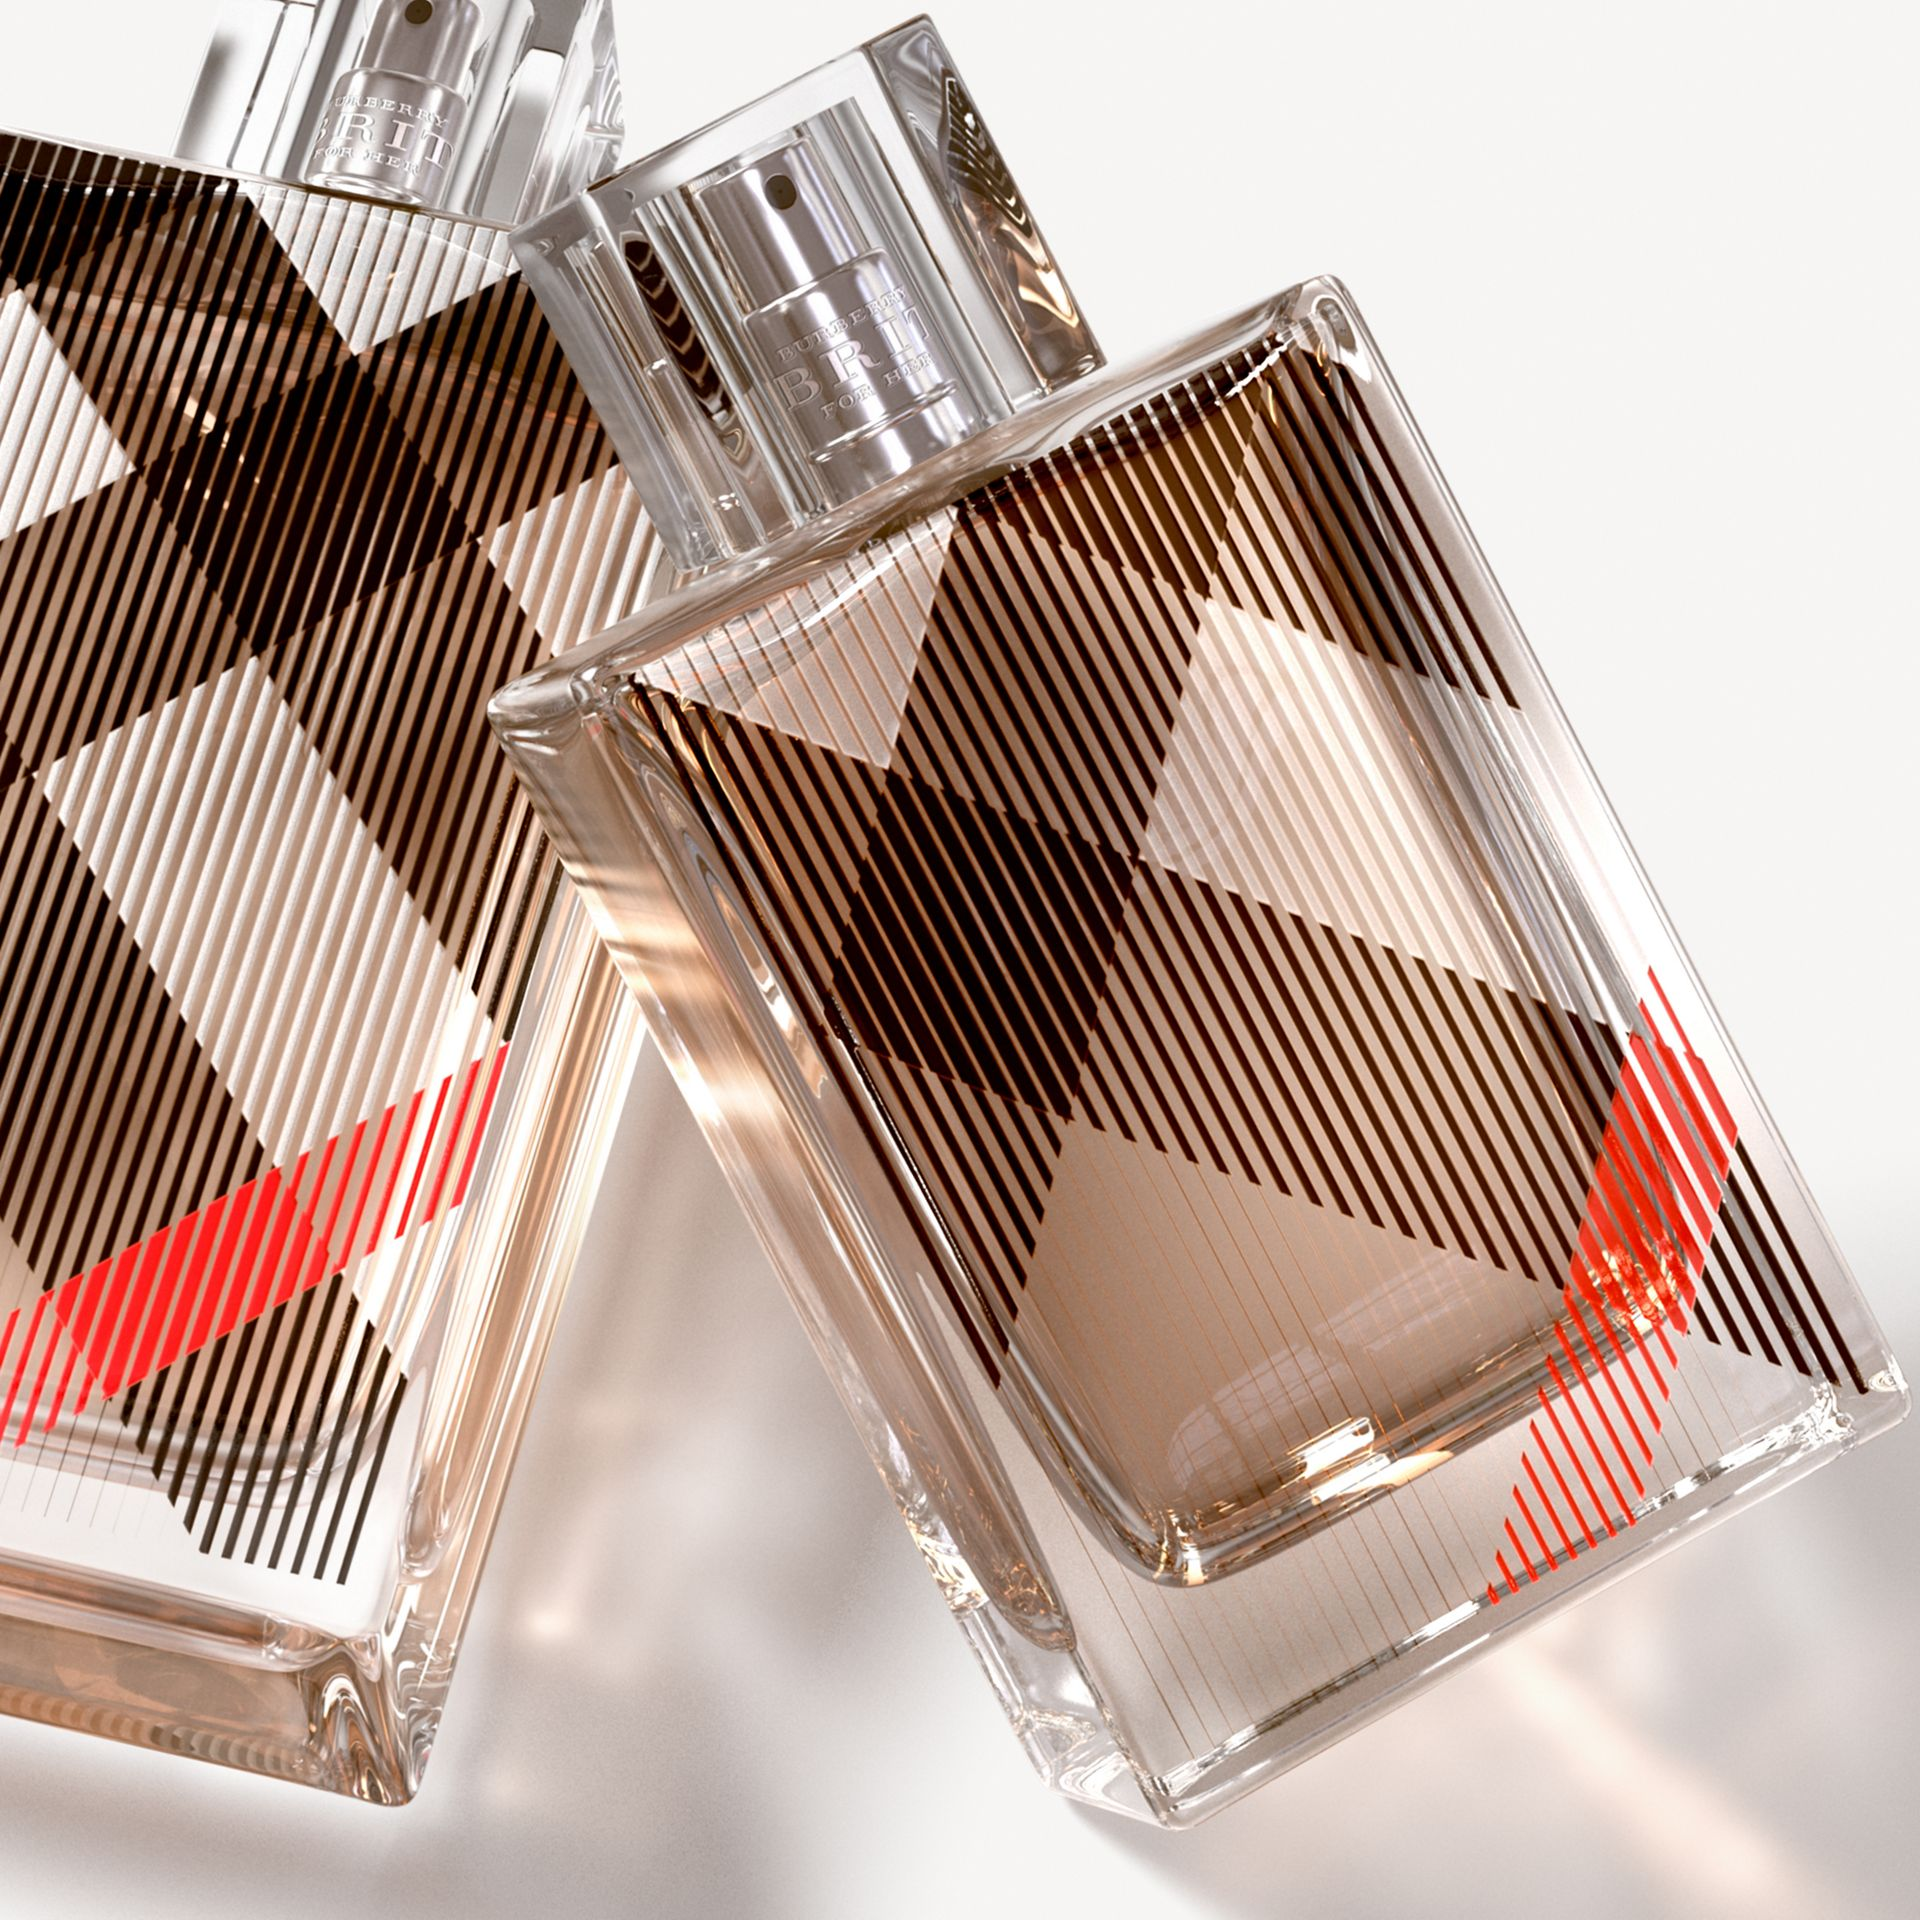 Eau de Parfum Burberry Brit for Her 50 ml - Femme | Burberry - photo de la galerie 2